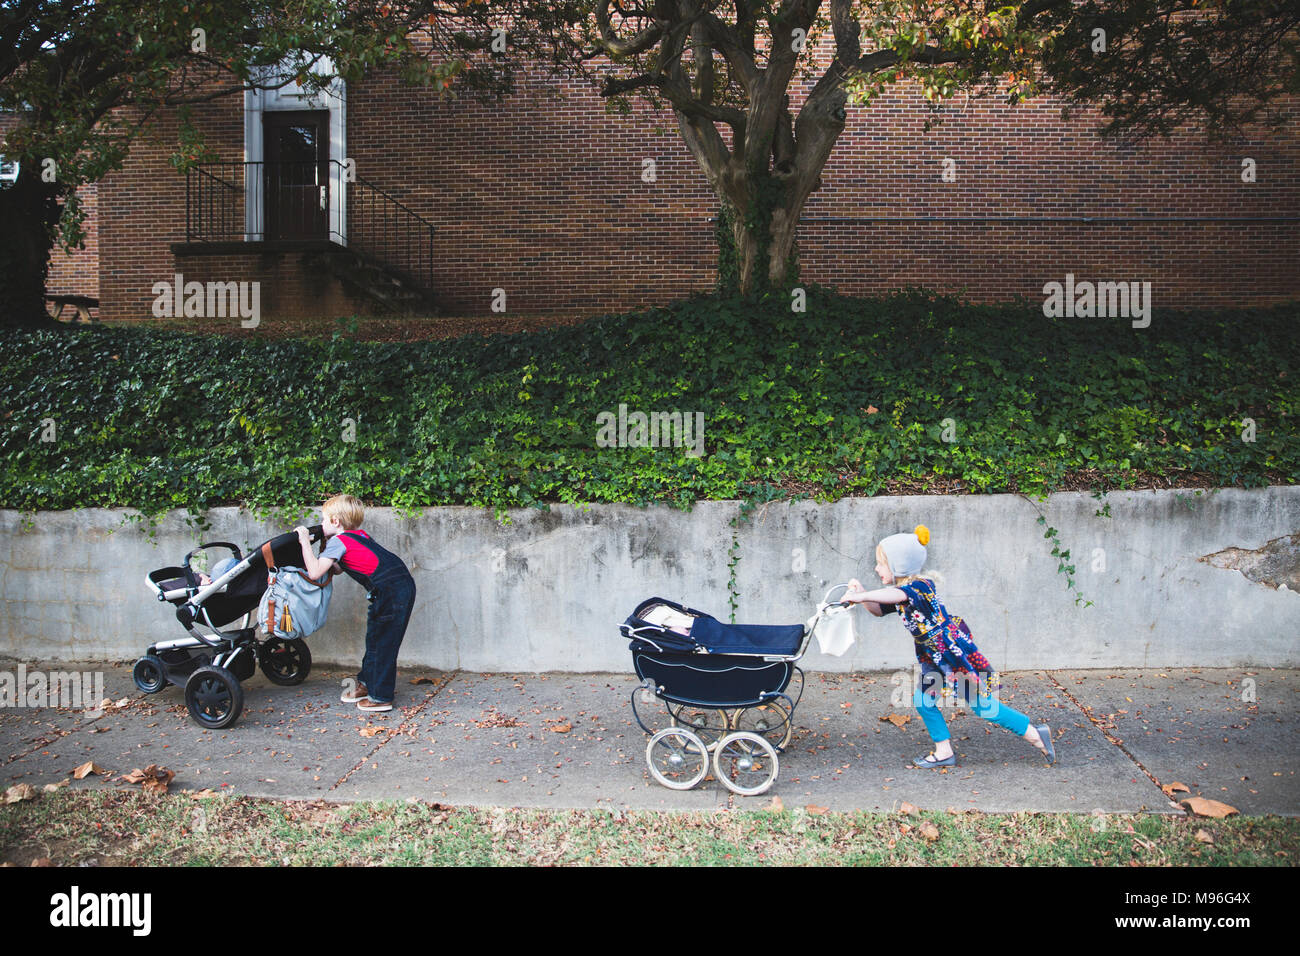 Children pushing prams along the street - Stock Image